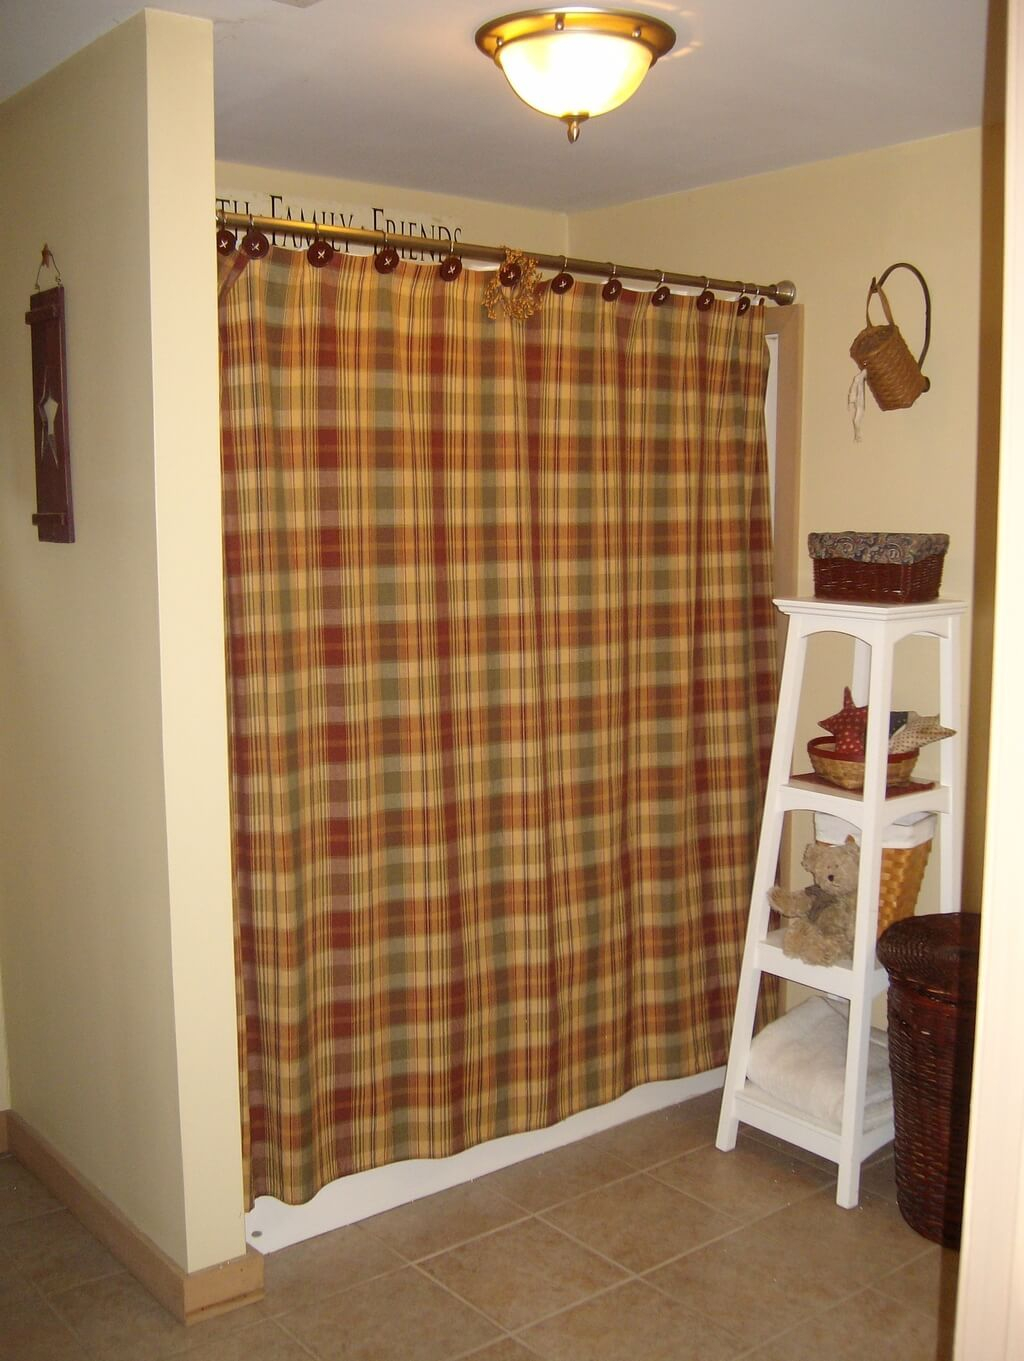 Bathroom Enchanting Country Decor With Old Gallery Curtain For regarding size 1024 X 1361